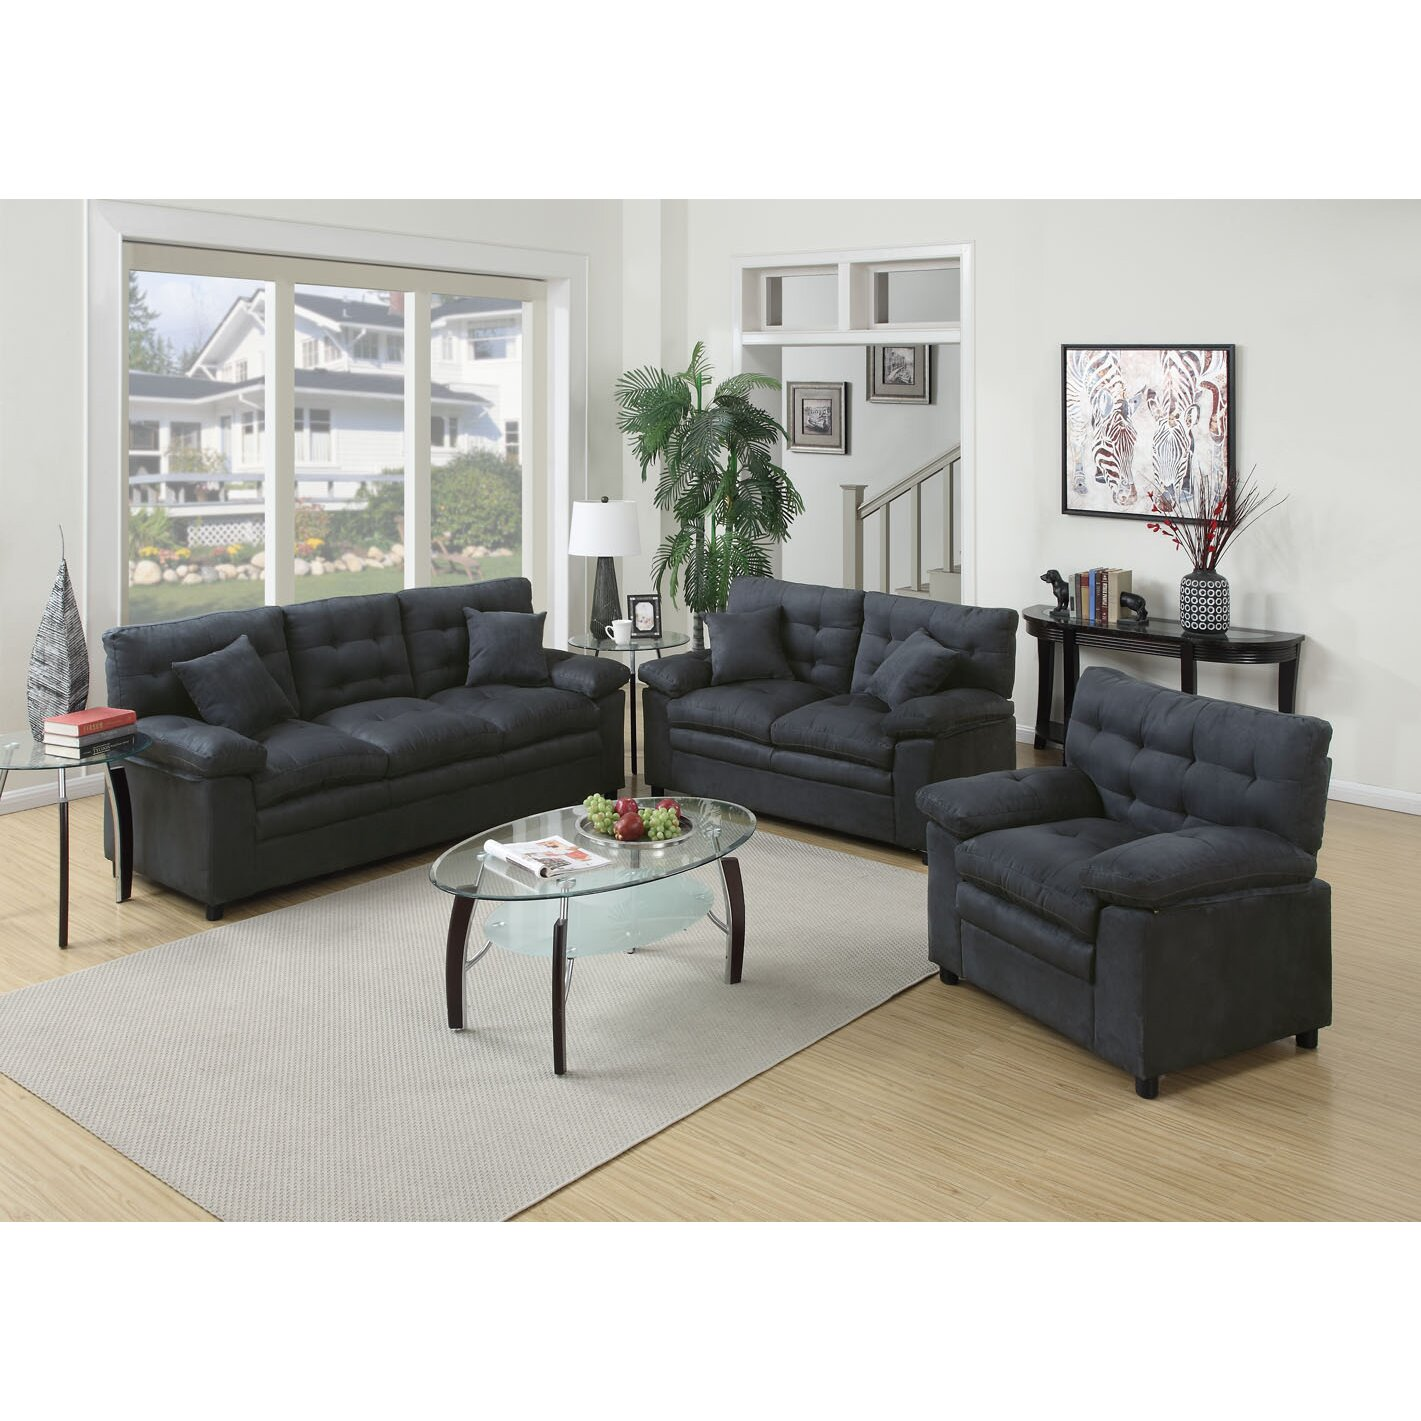 Poundex bobkona colona 3 piece living room set reviews for 3 piece living room furniture